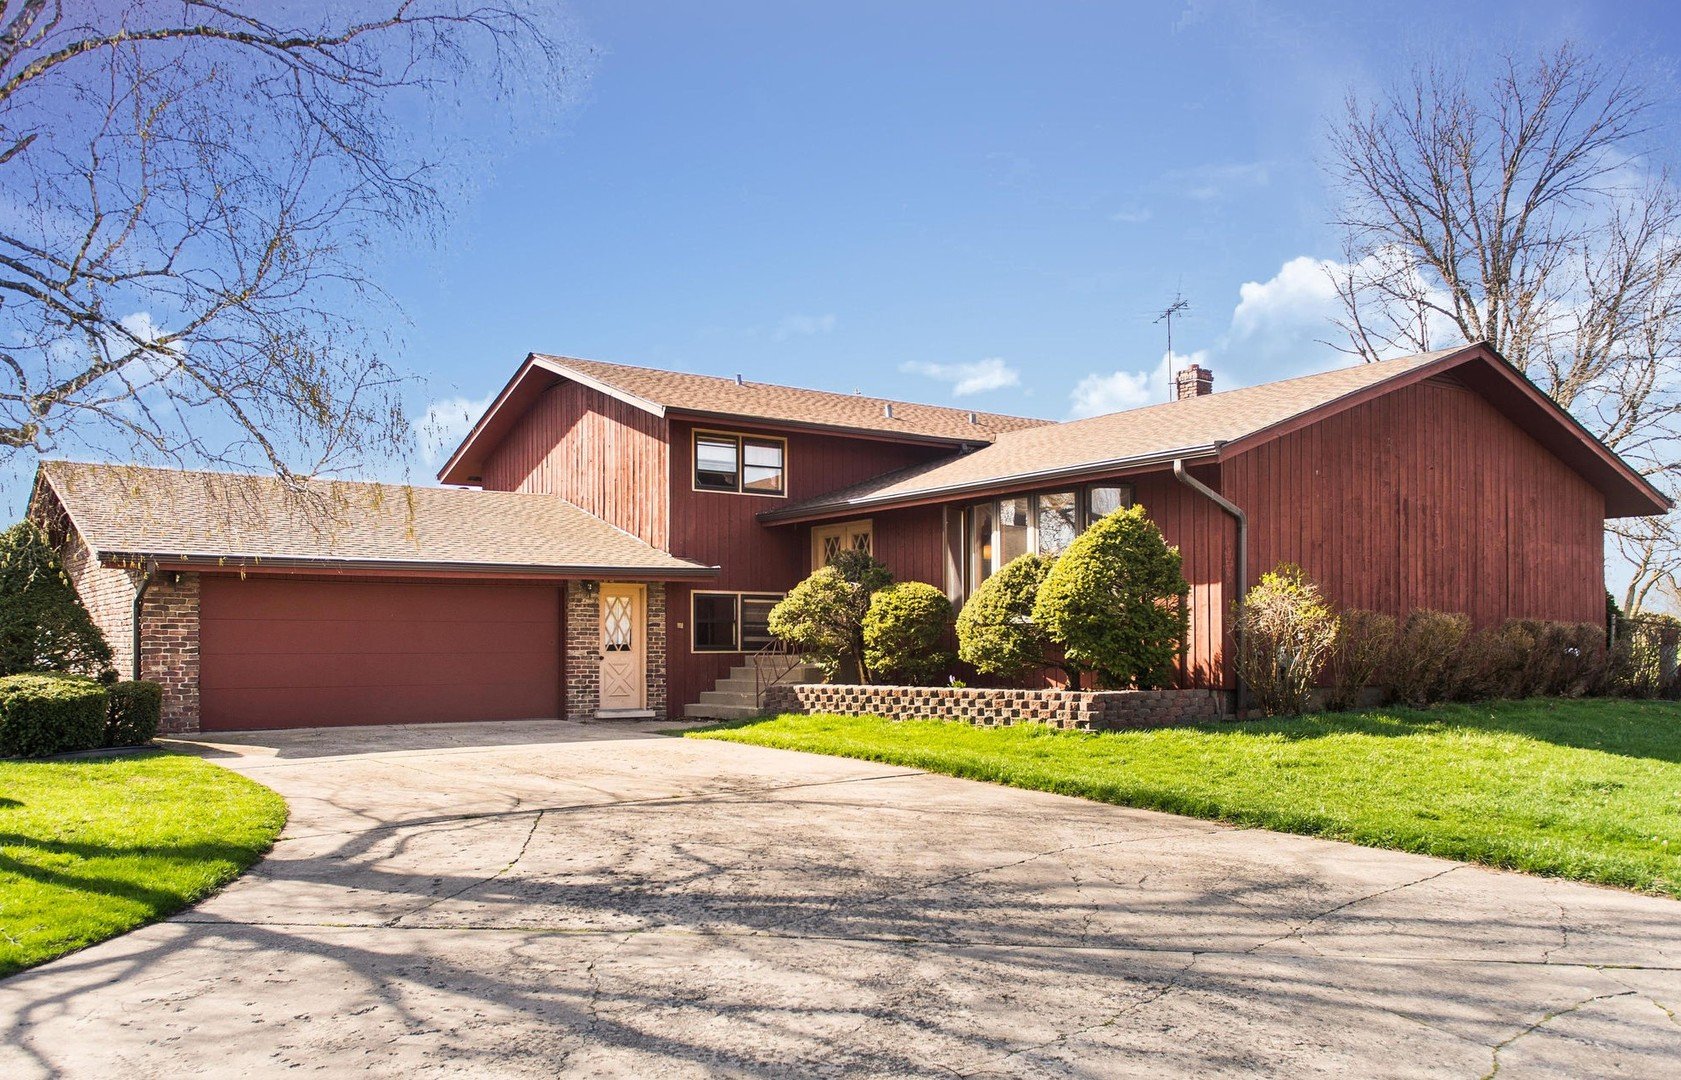 341 Meadowlark Road, Bloomingdale in Du Page County, IL 60108 Home for Sale